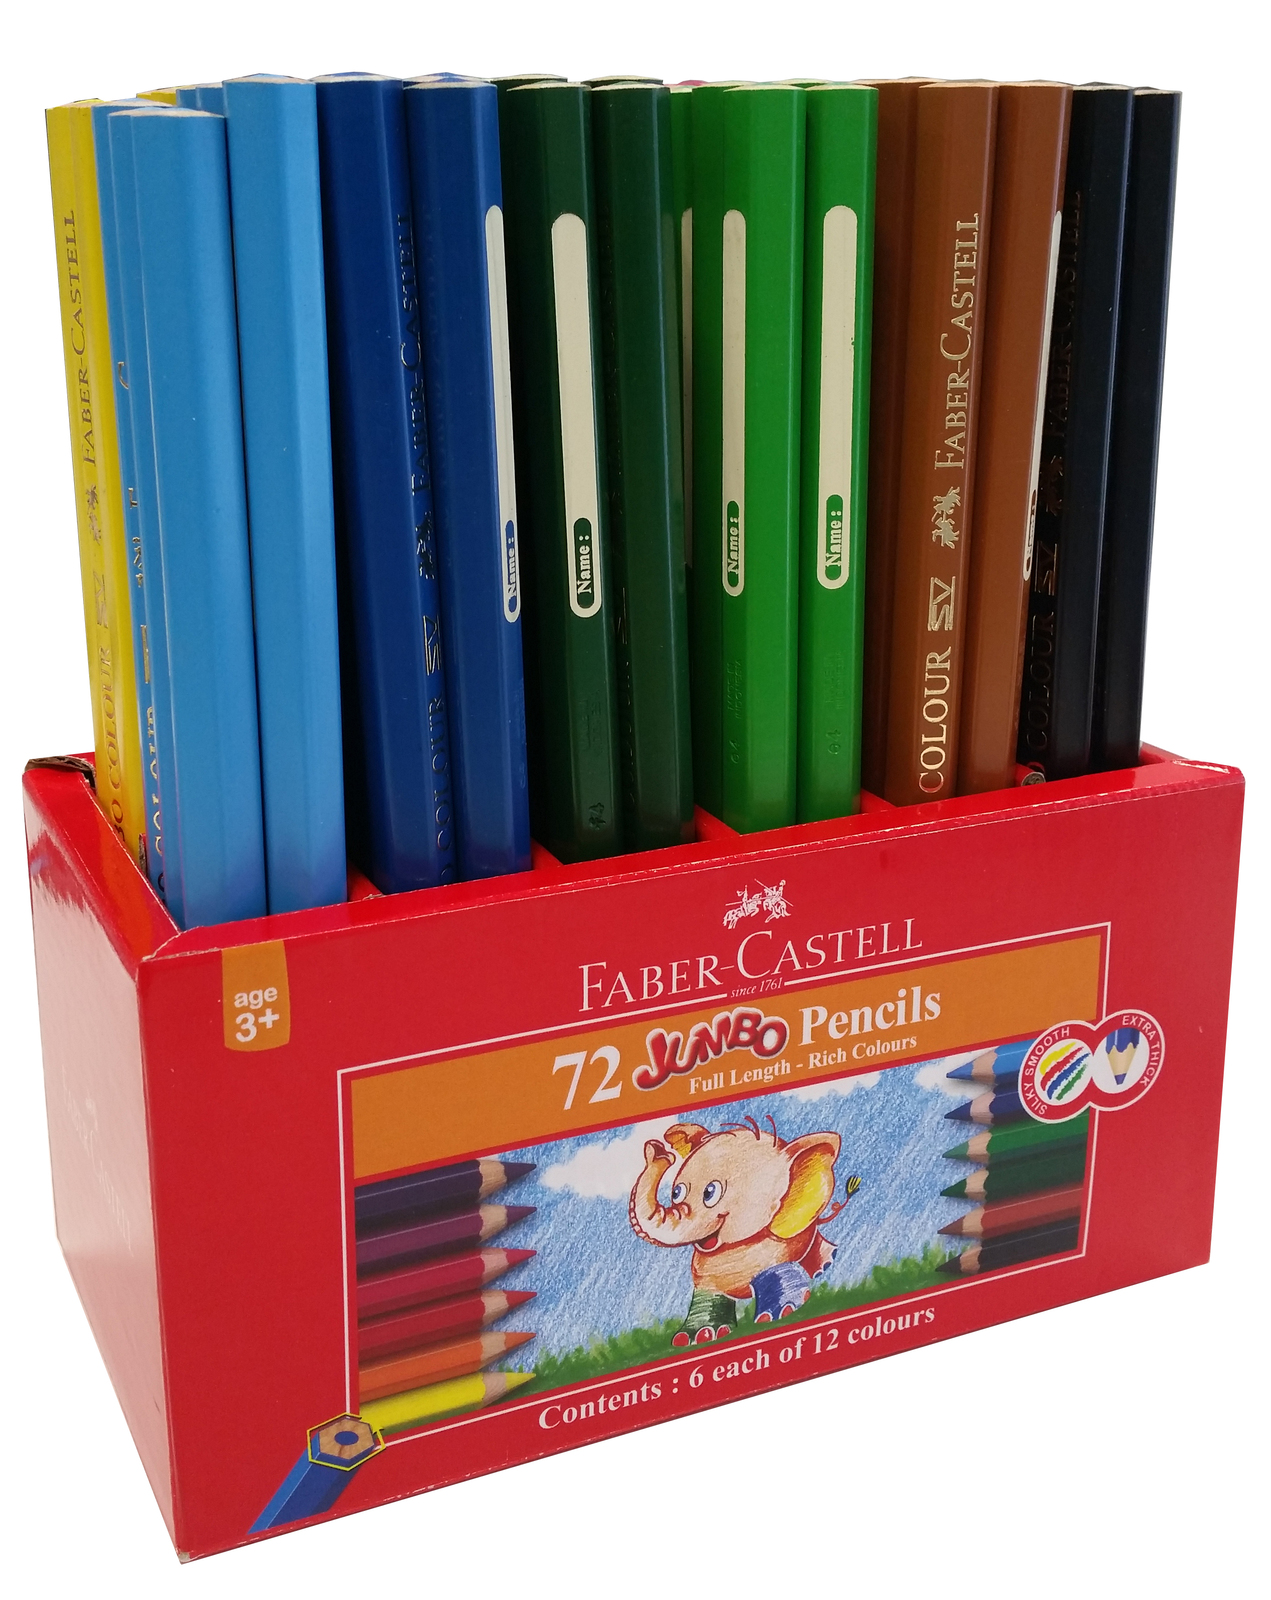 Faber-Castell: Jumbo Pencils (Caddie of 72) image